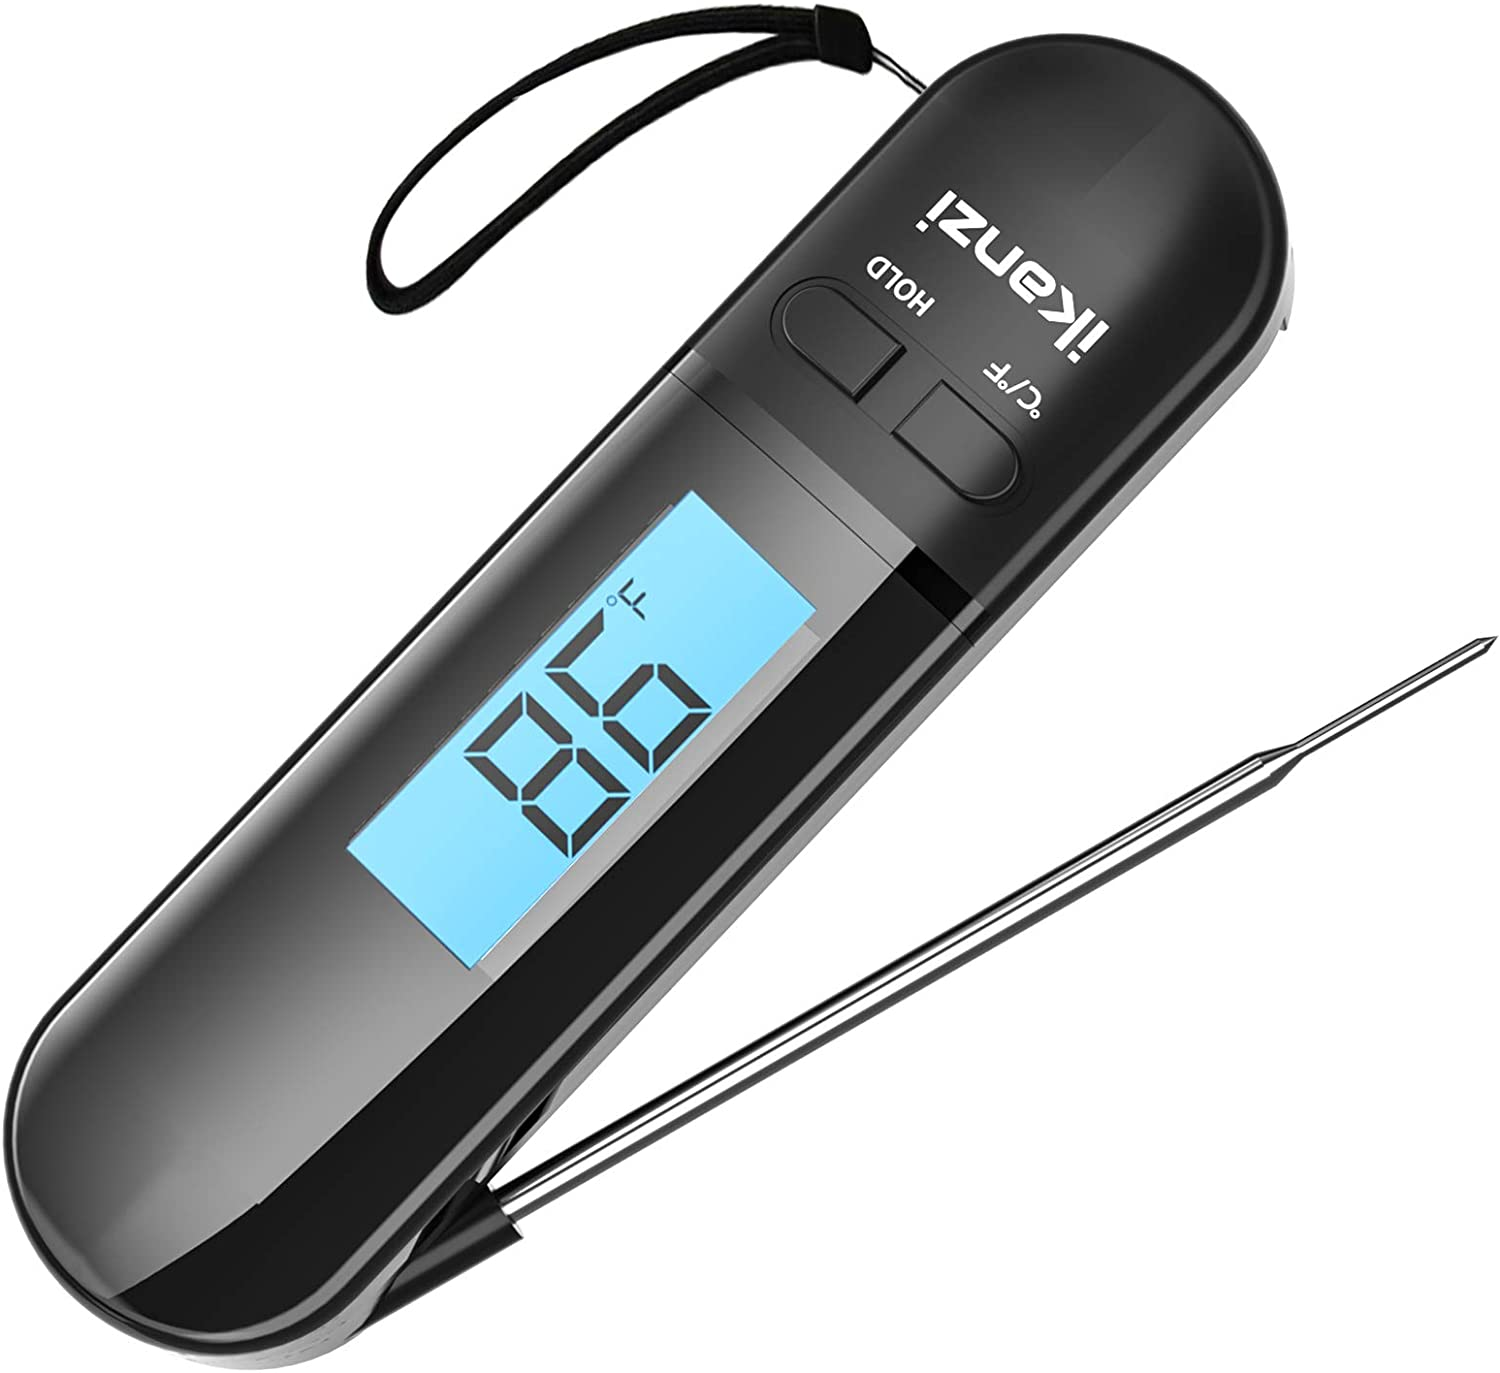 Meat Thermometer Food Thermometer Cooking Thermometer- Digital Instant Read Thermometer for Grilling/BBQ/Baking/Candy/Liquids/Oil Kitchen with Backlight LCD: Kitchen & Dining